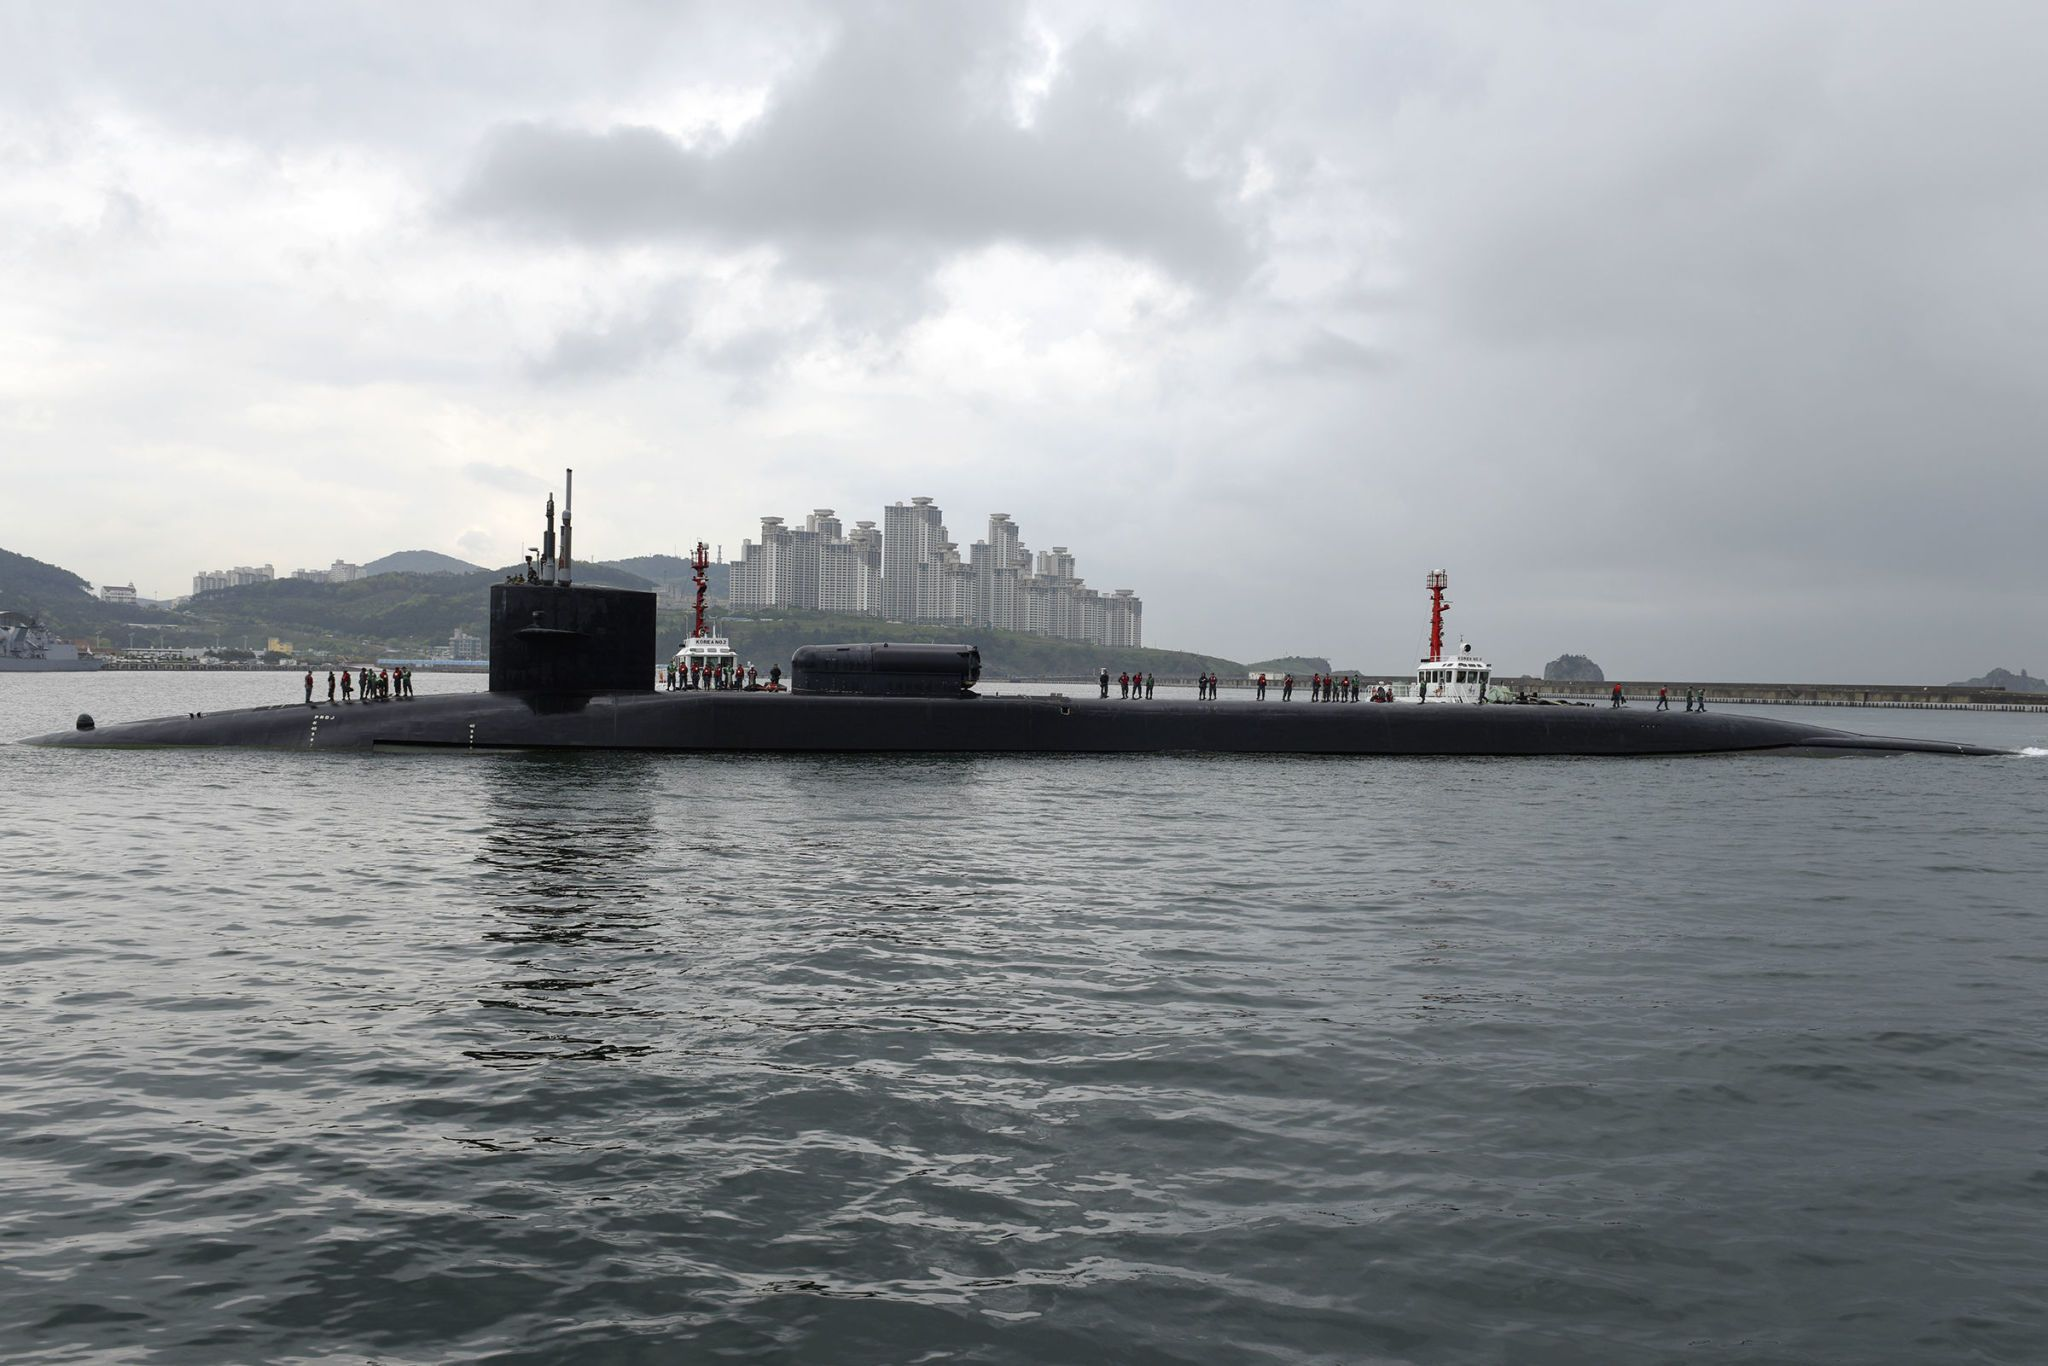 U.S. Cruise Missile-Carrying Sub to Visit South Korea This Weekend